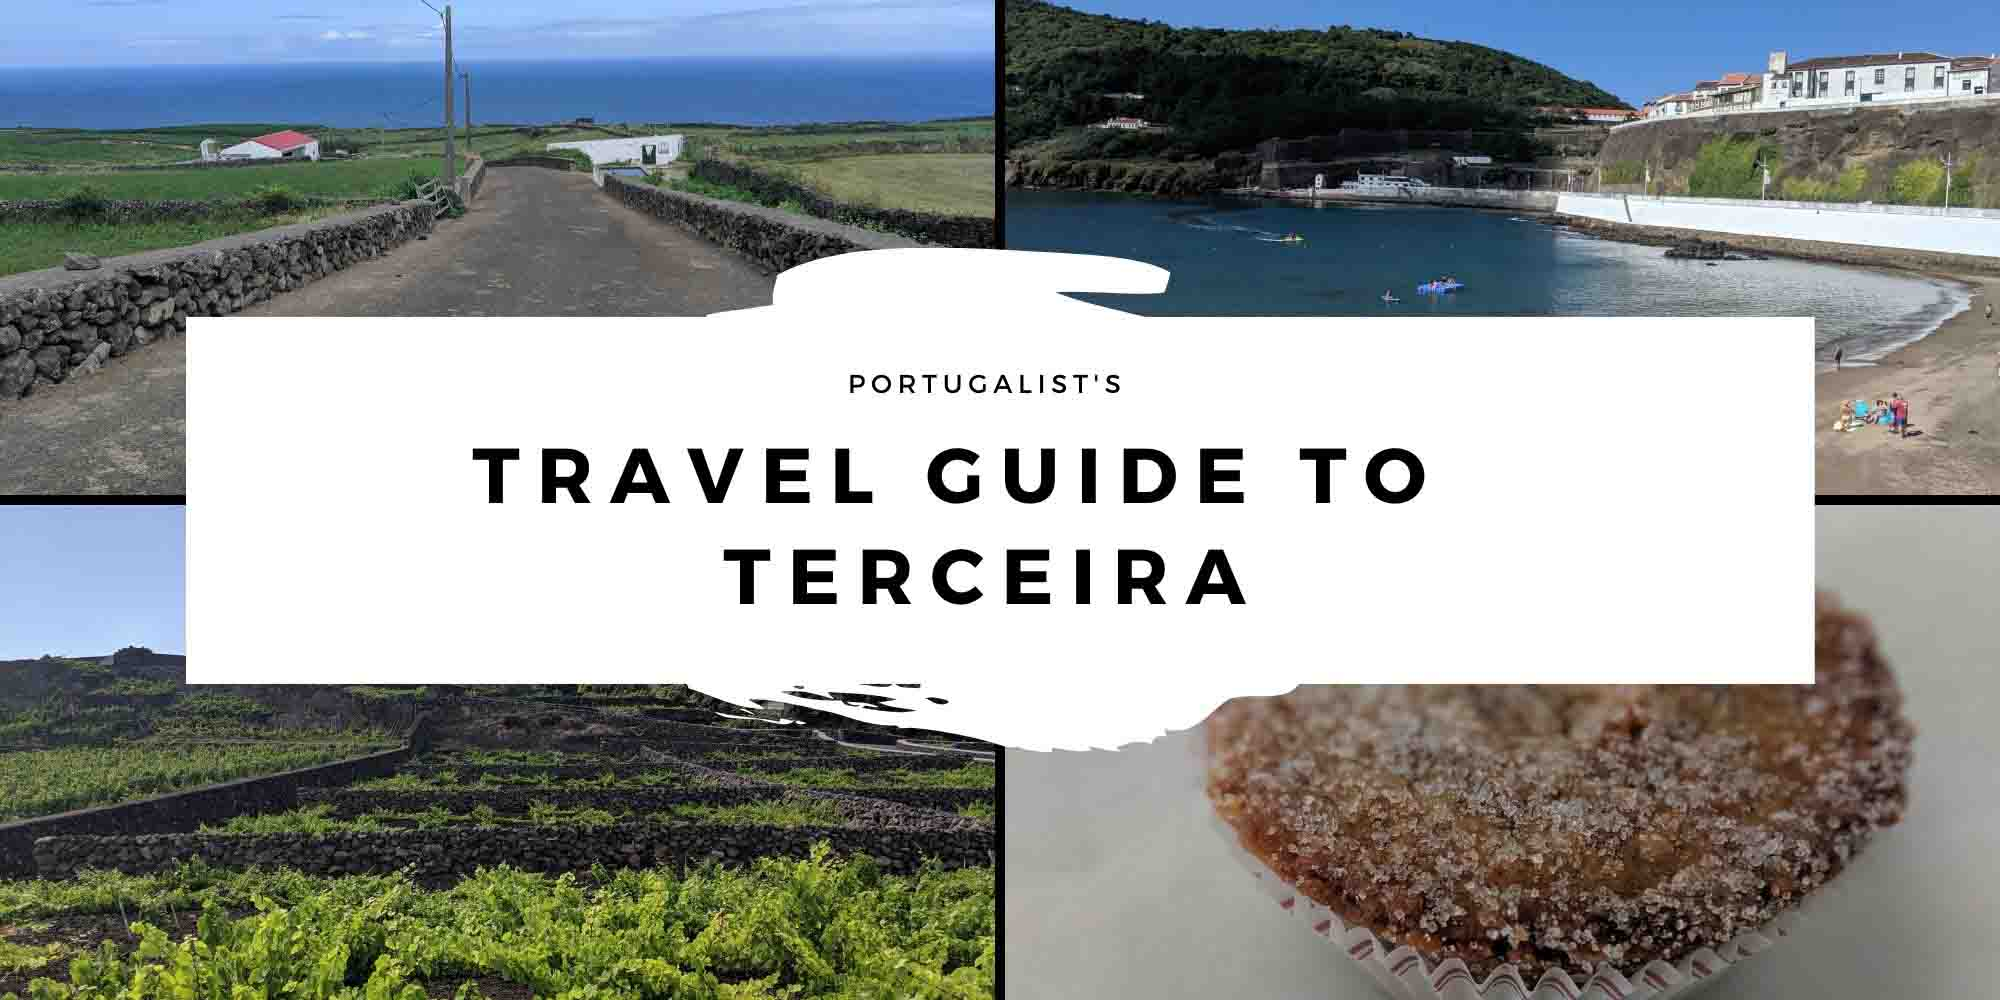 terceira travel guide header